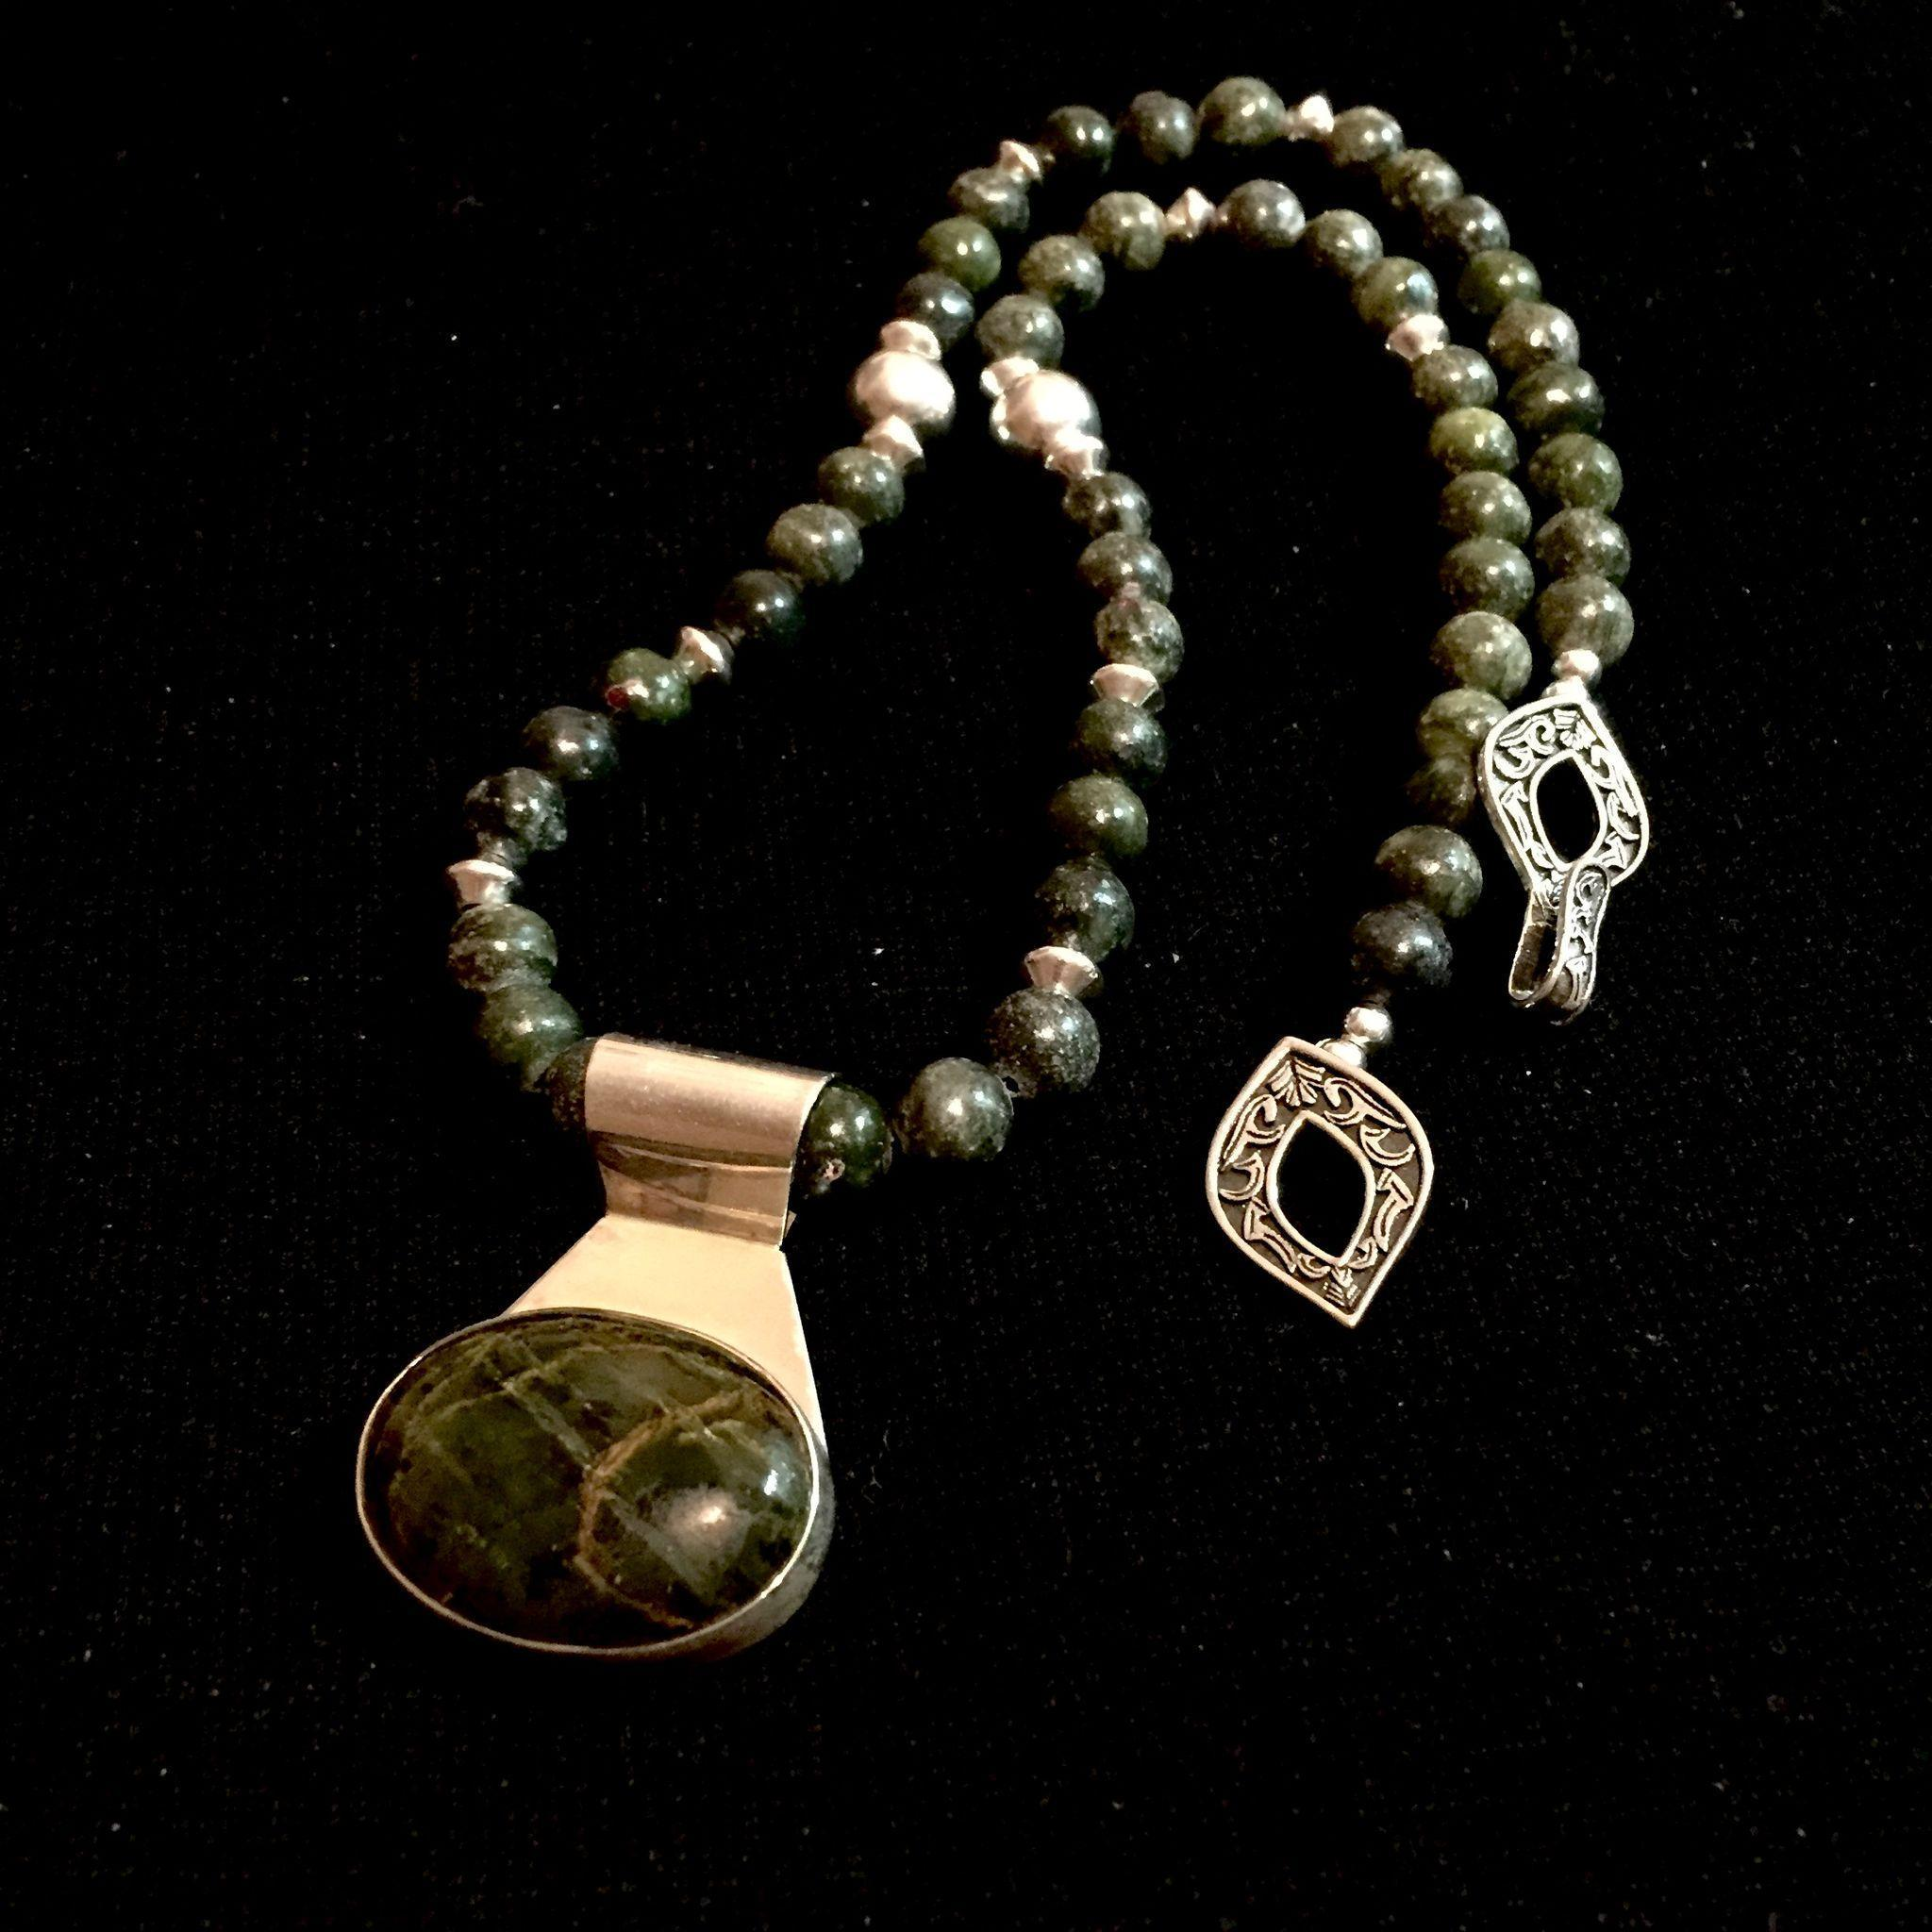 Green Agate and Sterling Silver Necklace, 22 Inches